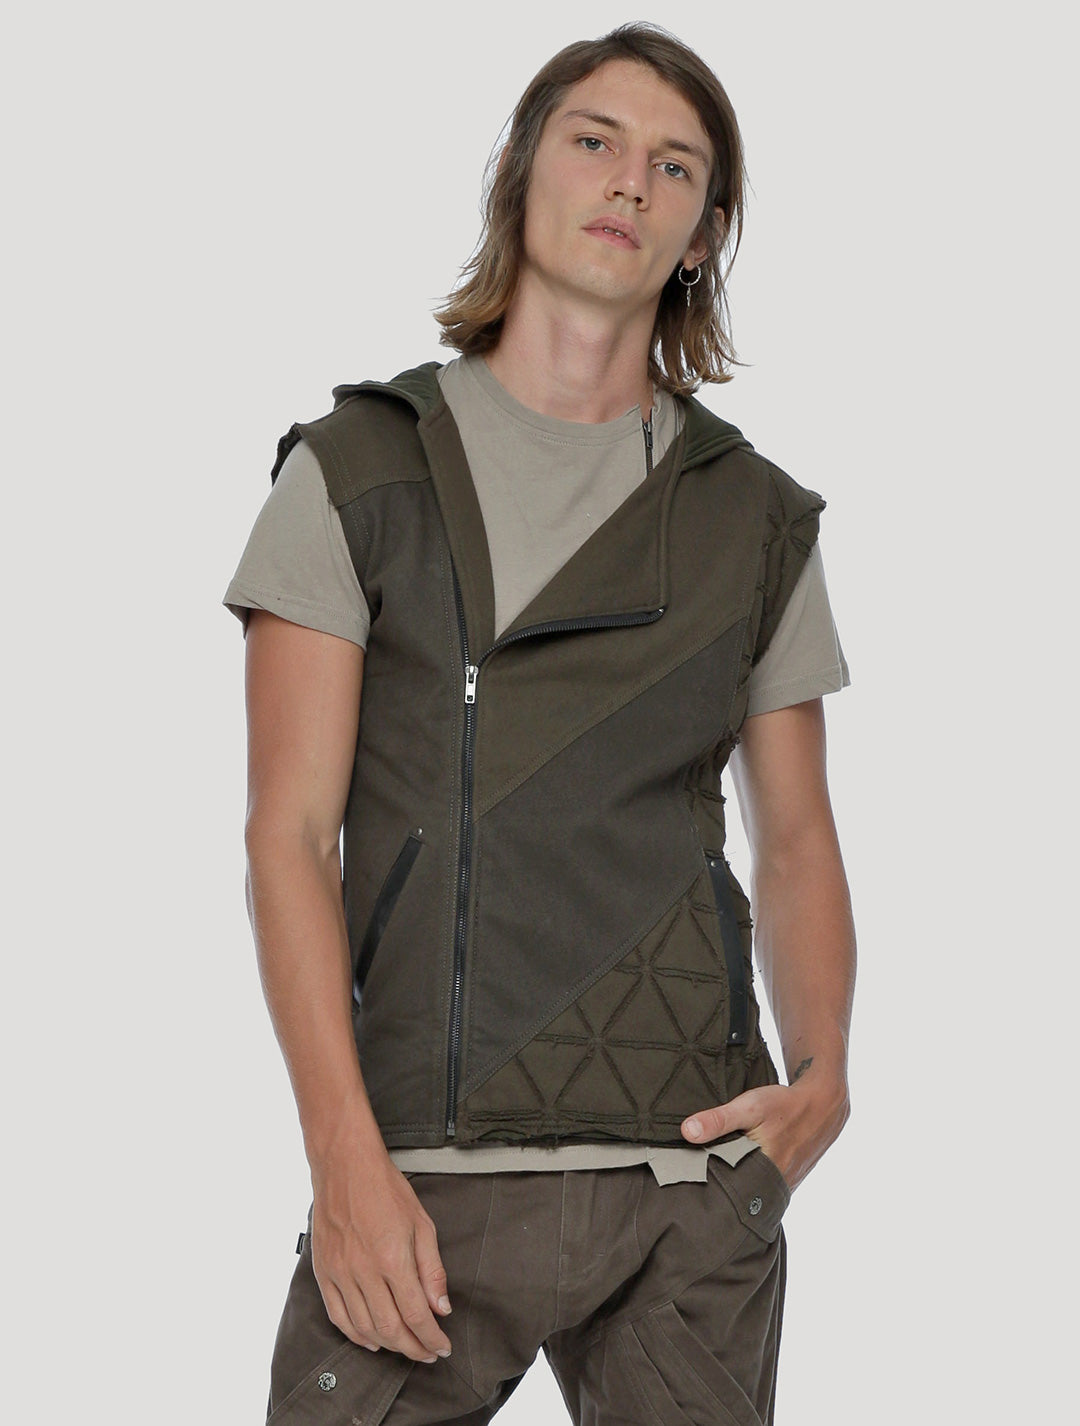 Olive Green Shinobi Hoodie Vest by Psylo Fashion